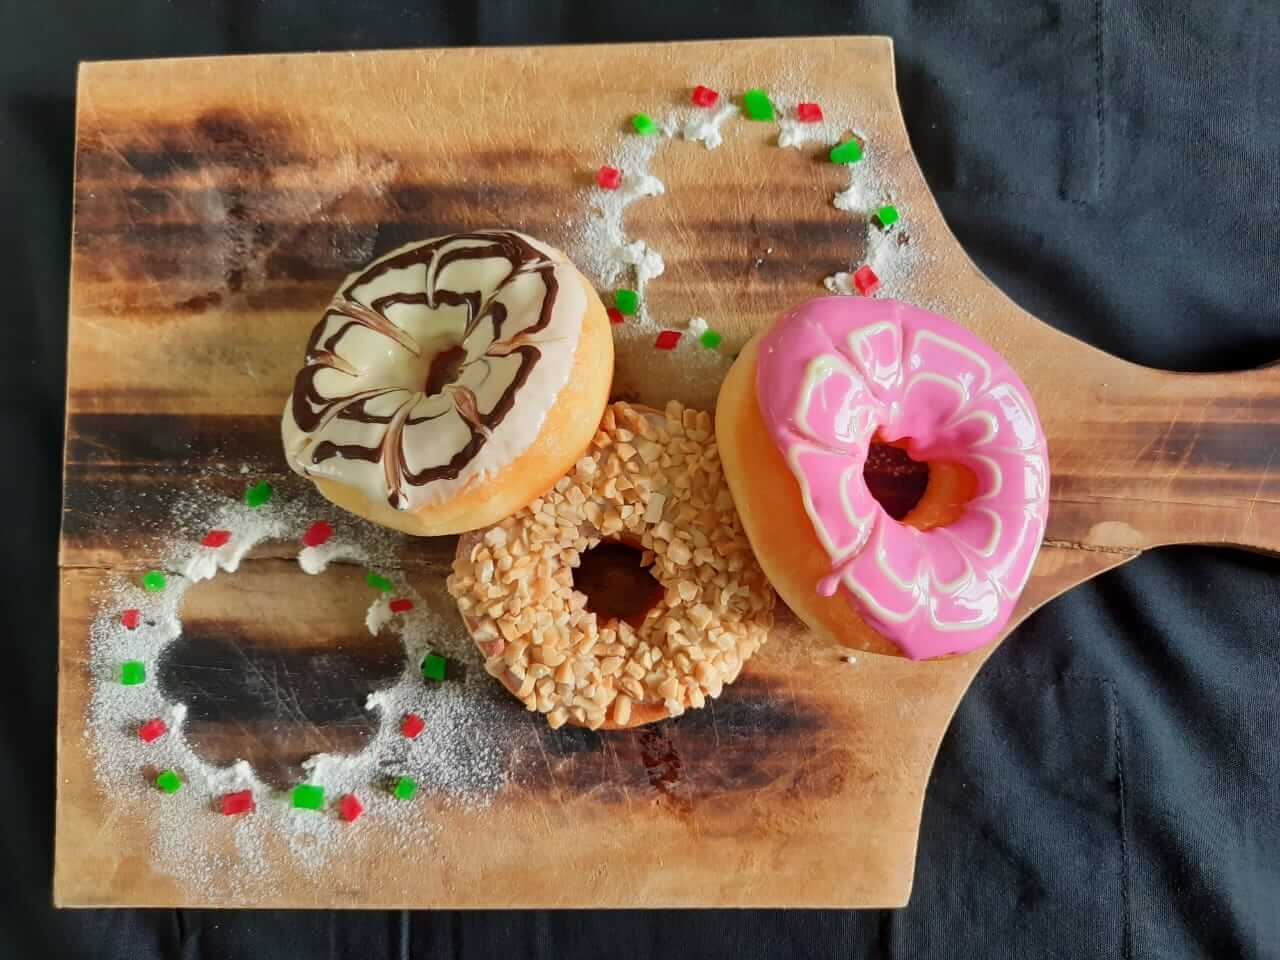 AB Donuts by De Access Bakery